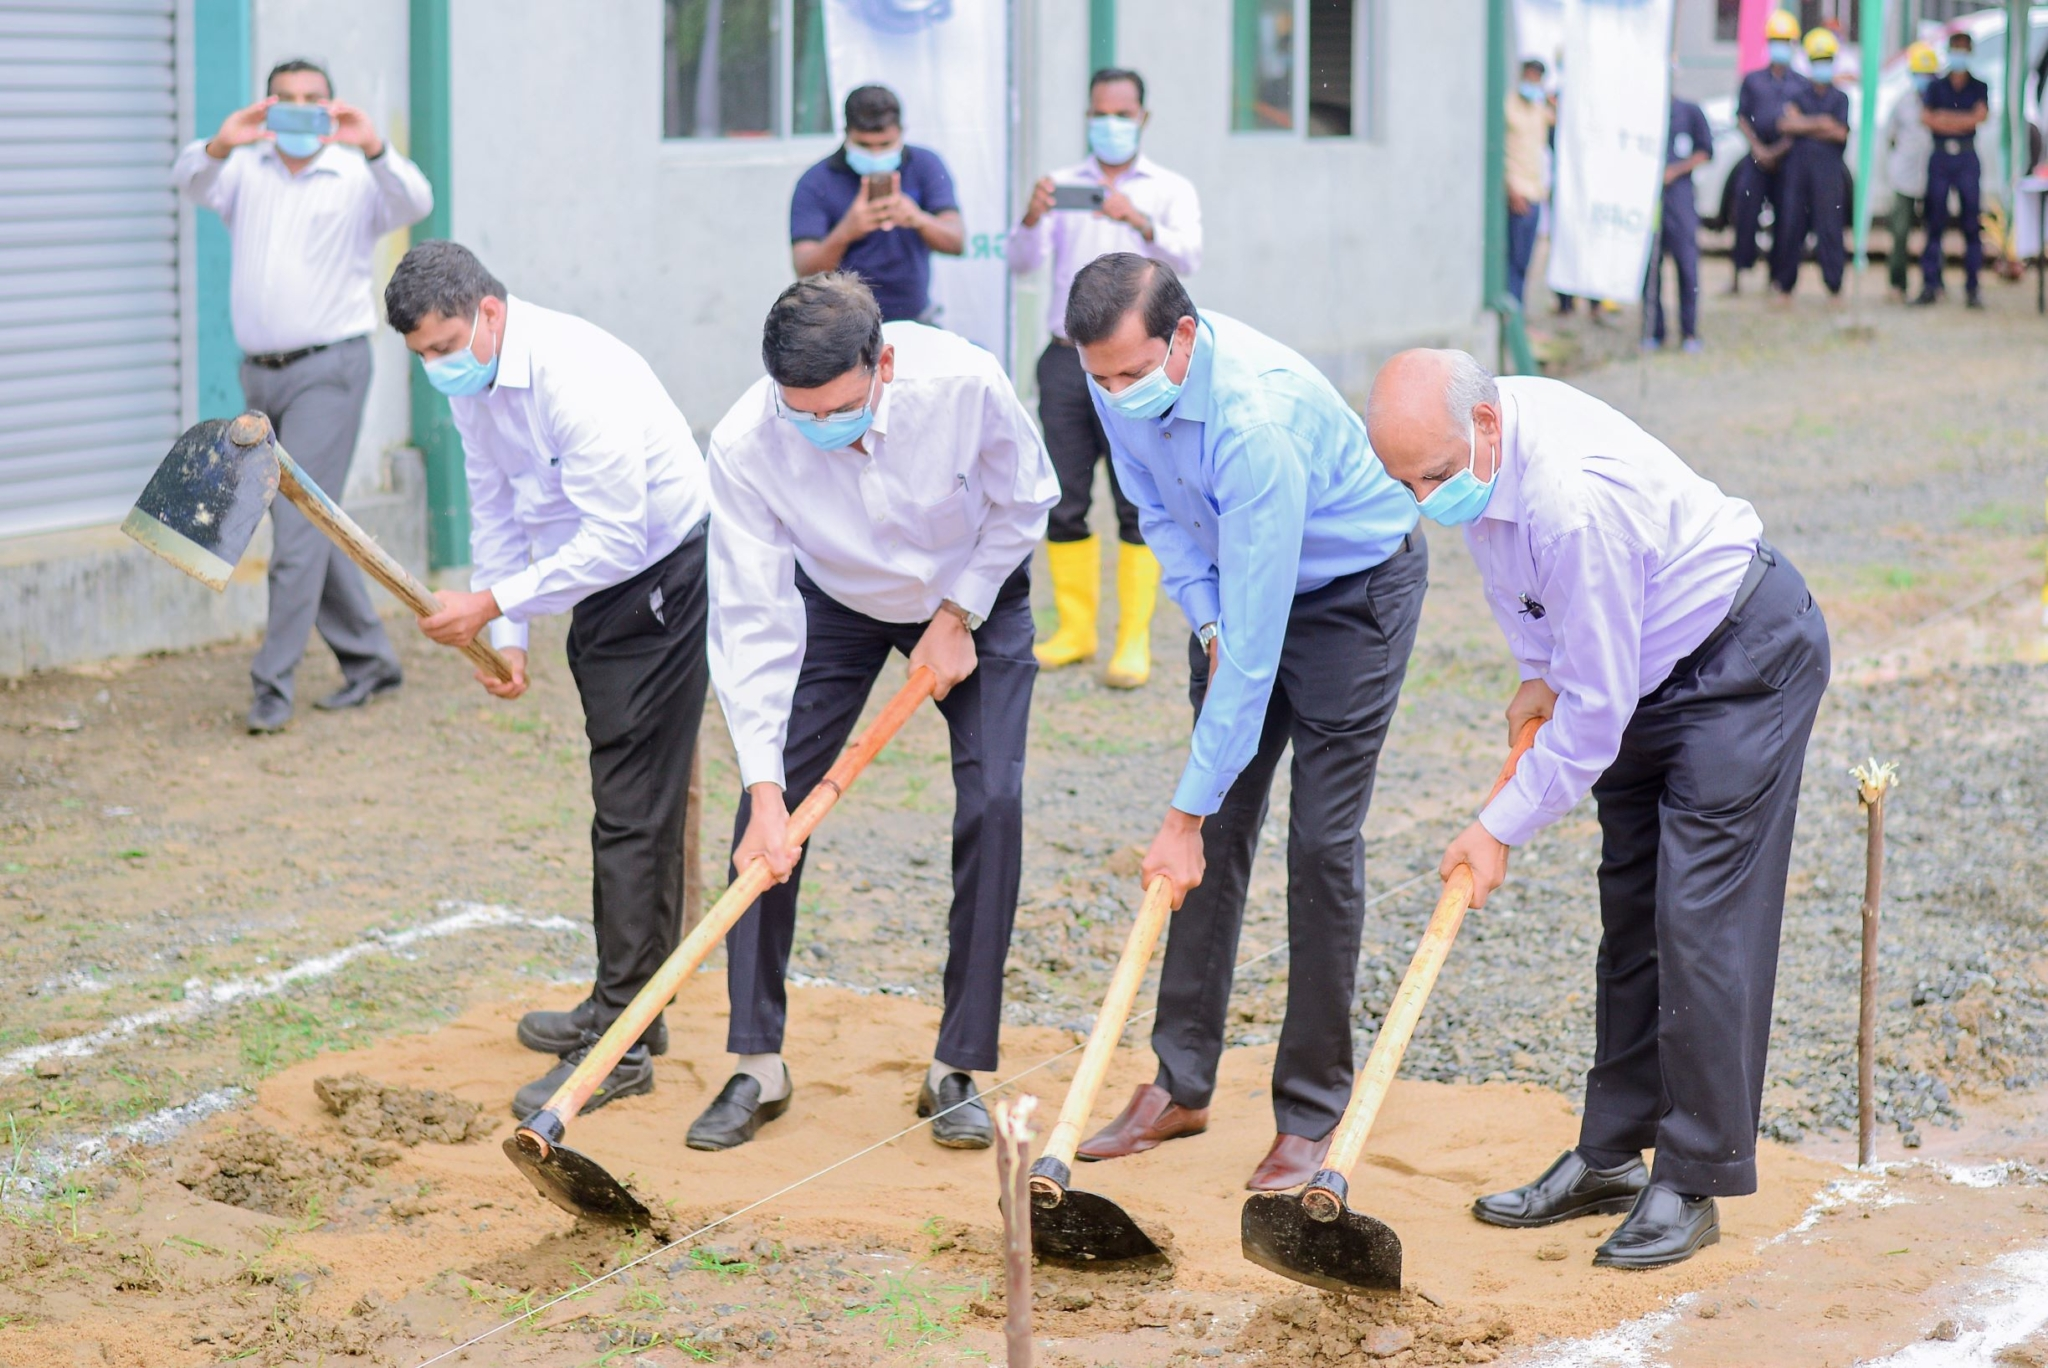 GRI breaks ground on phase 2 of $100 million speciality tyre plant